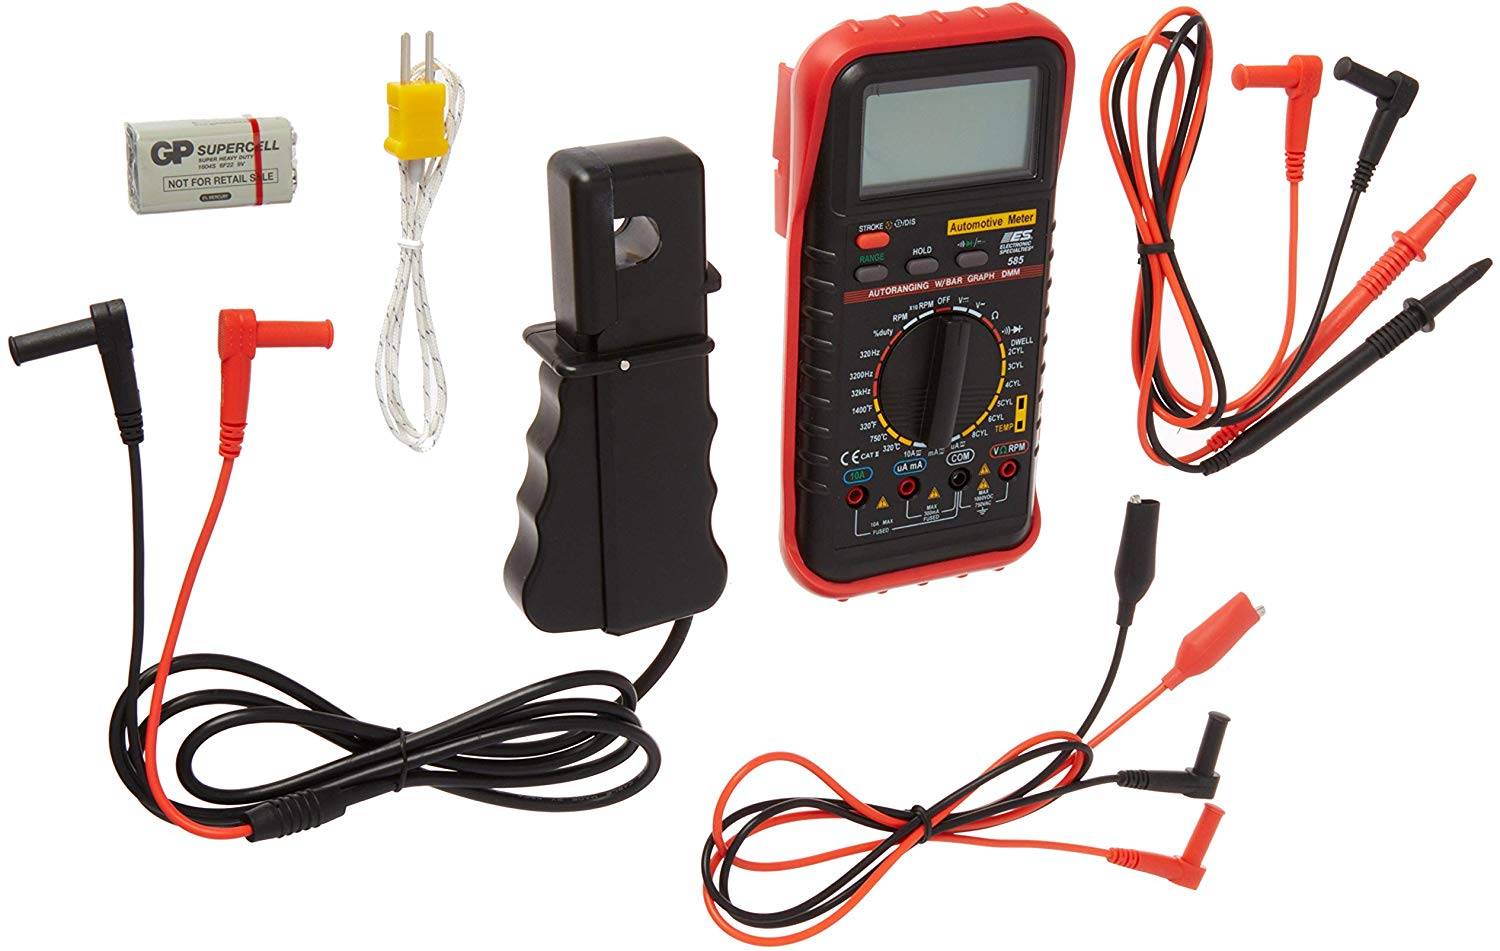 Deluxe Multimeter Kit Automotive Meter with RPM and Temperature Tools Equipment Hand Tools